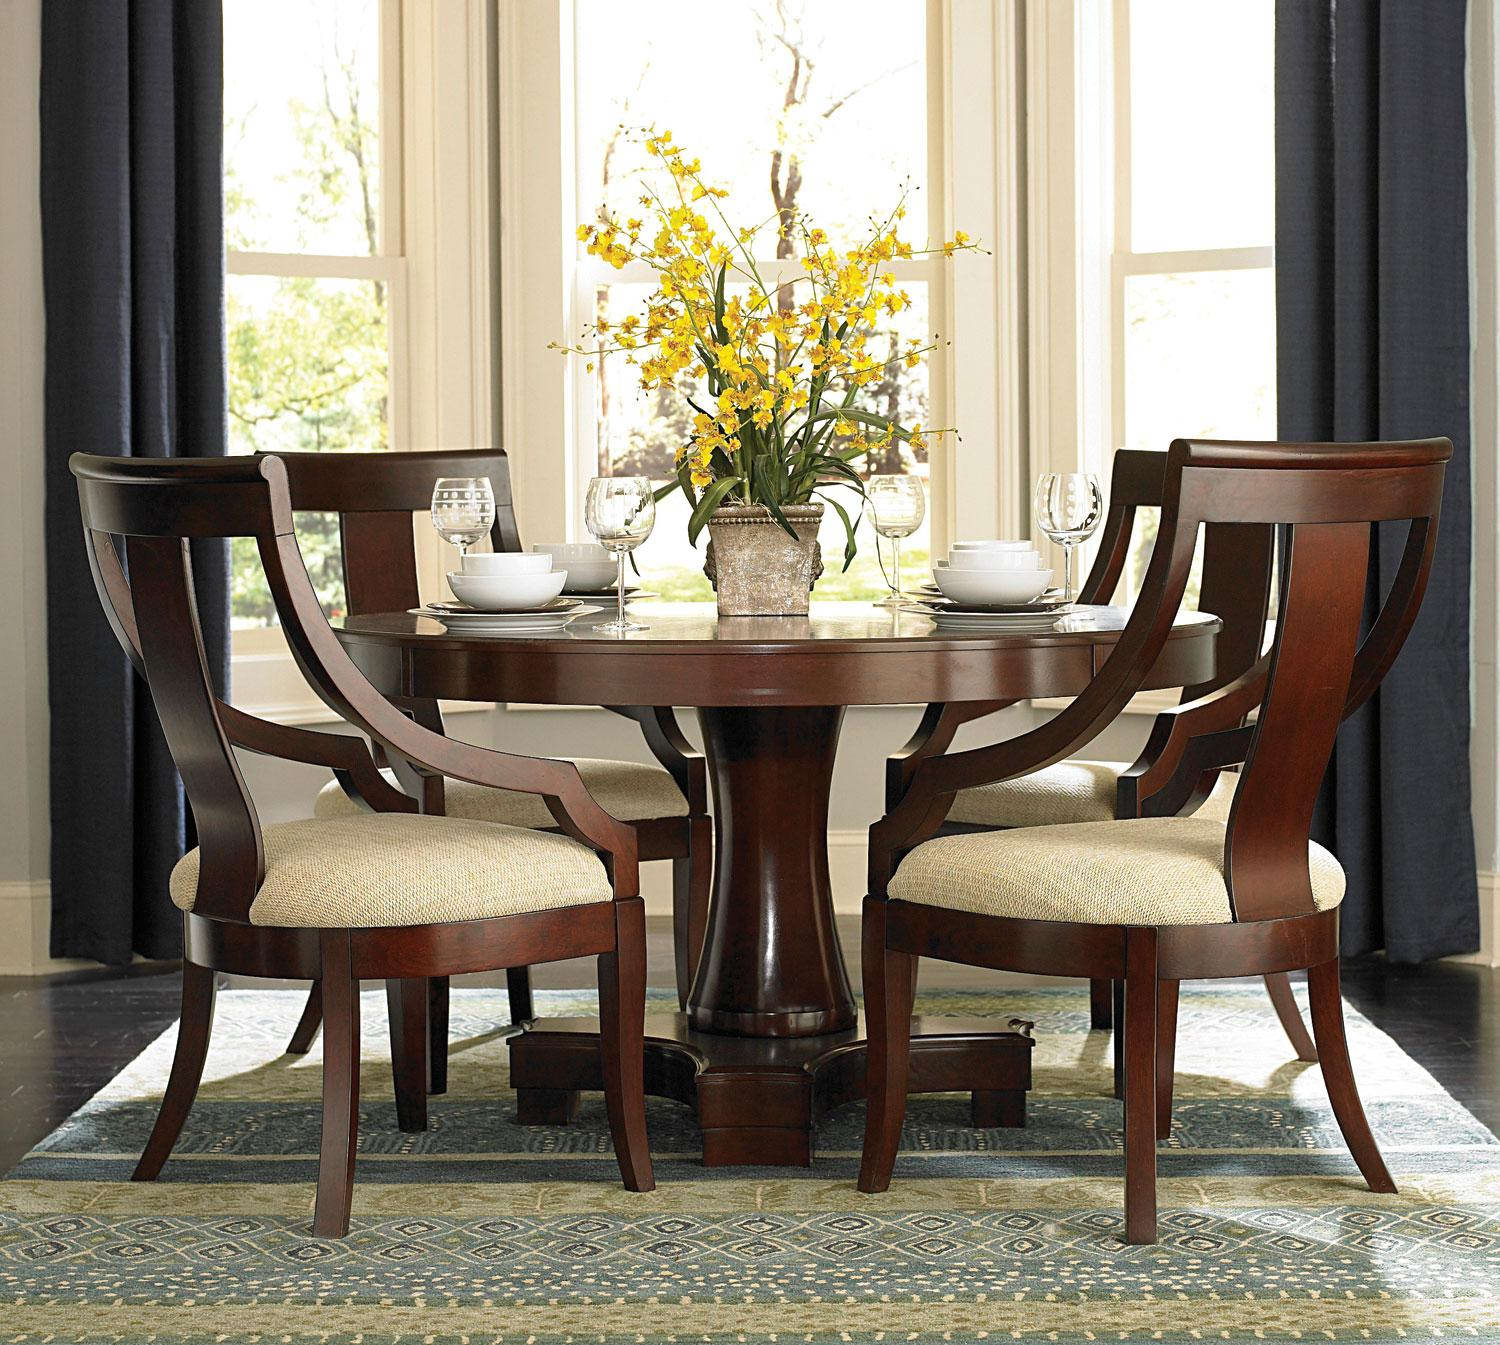 Great Round Dining Room Table For 8 With Beautiful Yellow Dining Table Centerpieces With Round And Laminated Chair Plus Bay Window